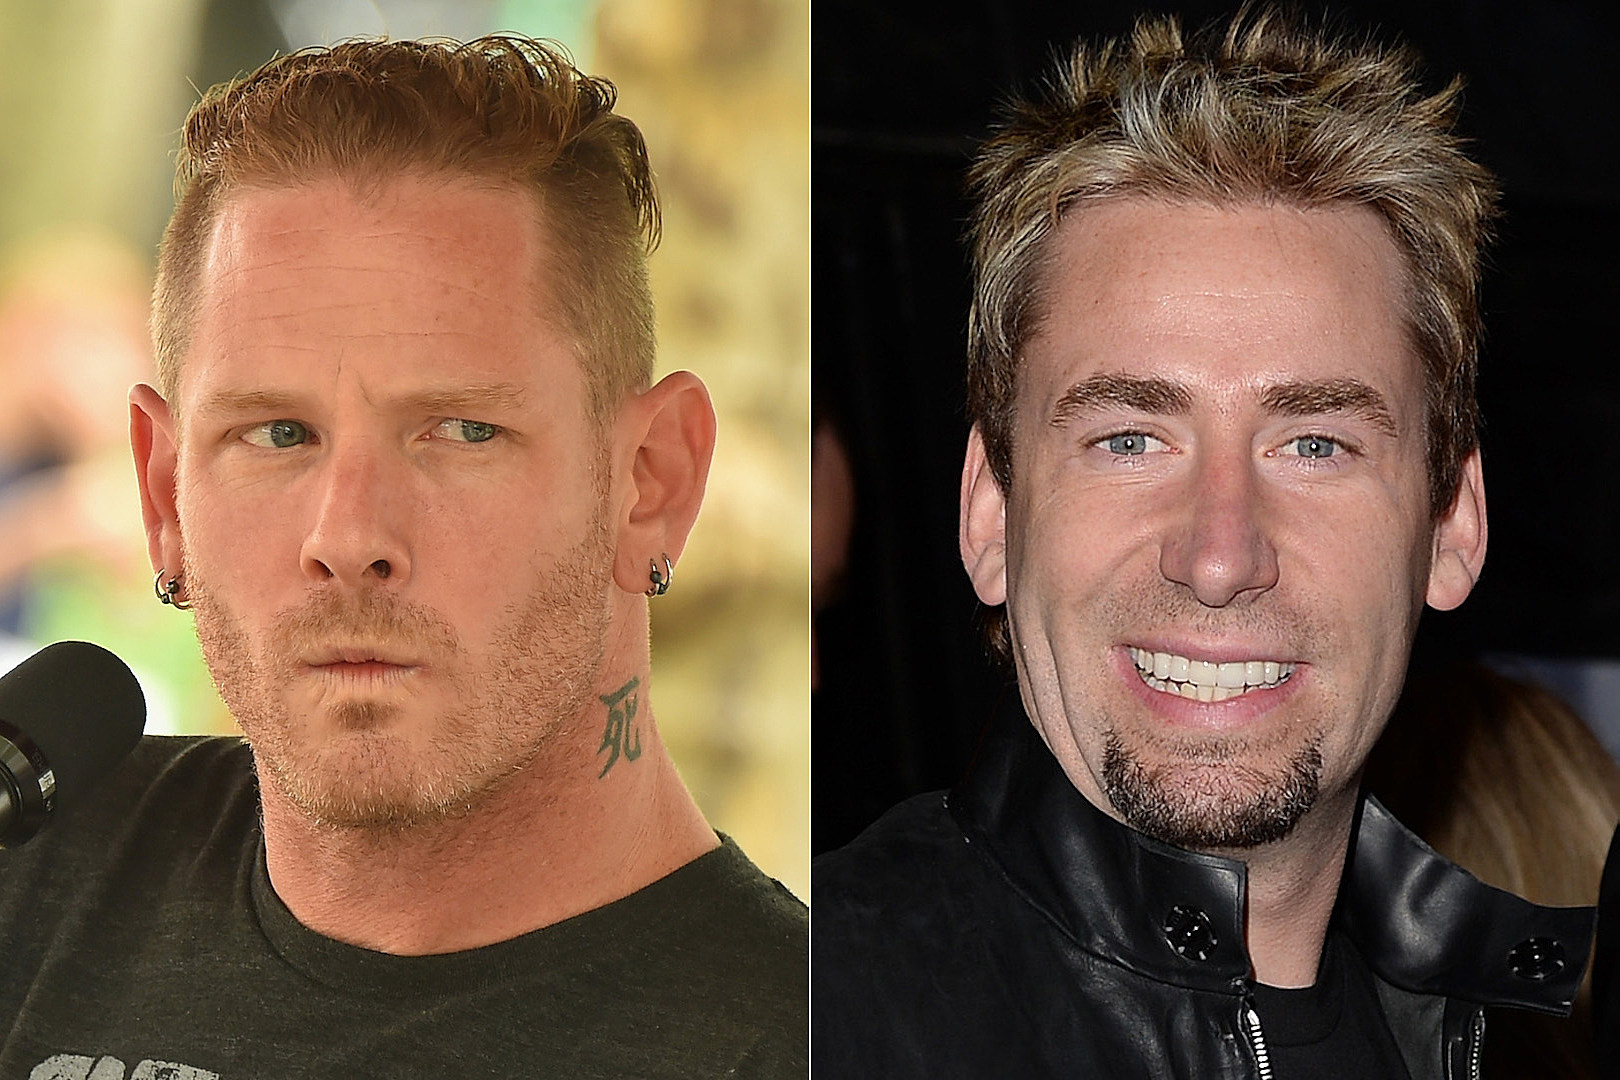 Corey taylor nickelback members called to apologize for chad kroeger m4hsunfo